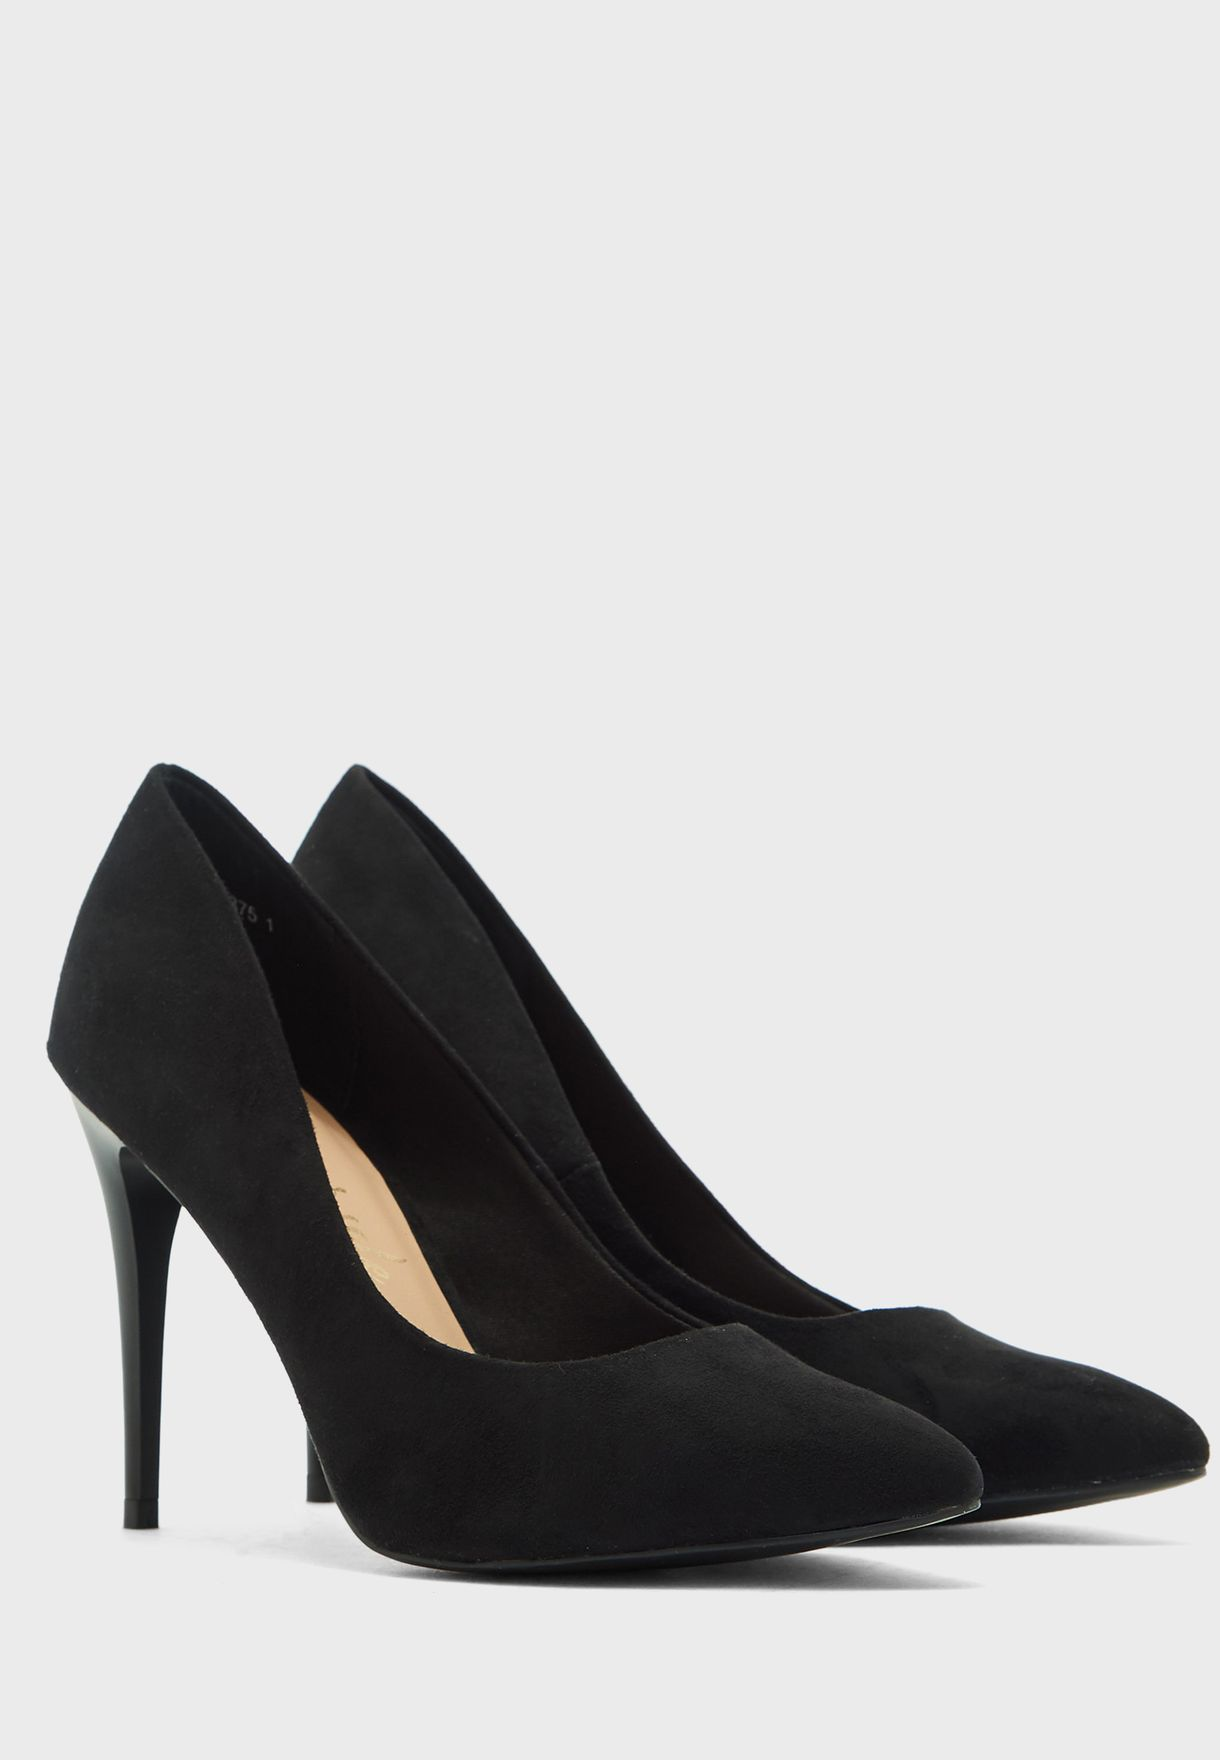 New Look Yinny Pointed Toe Pump - Brand Shoes